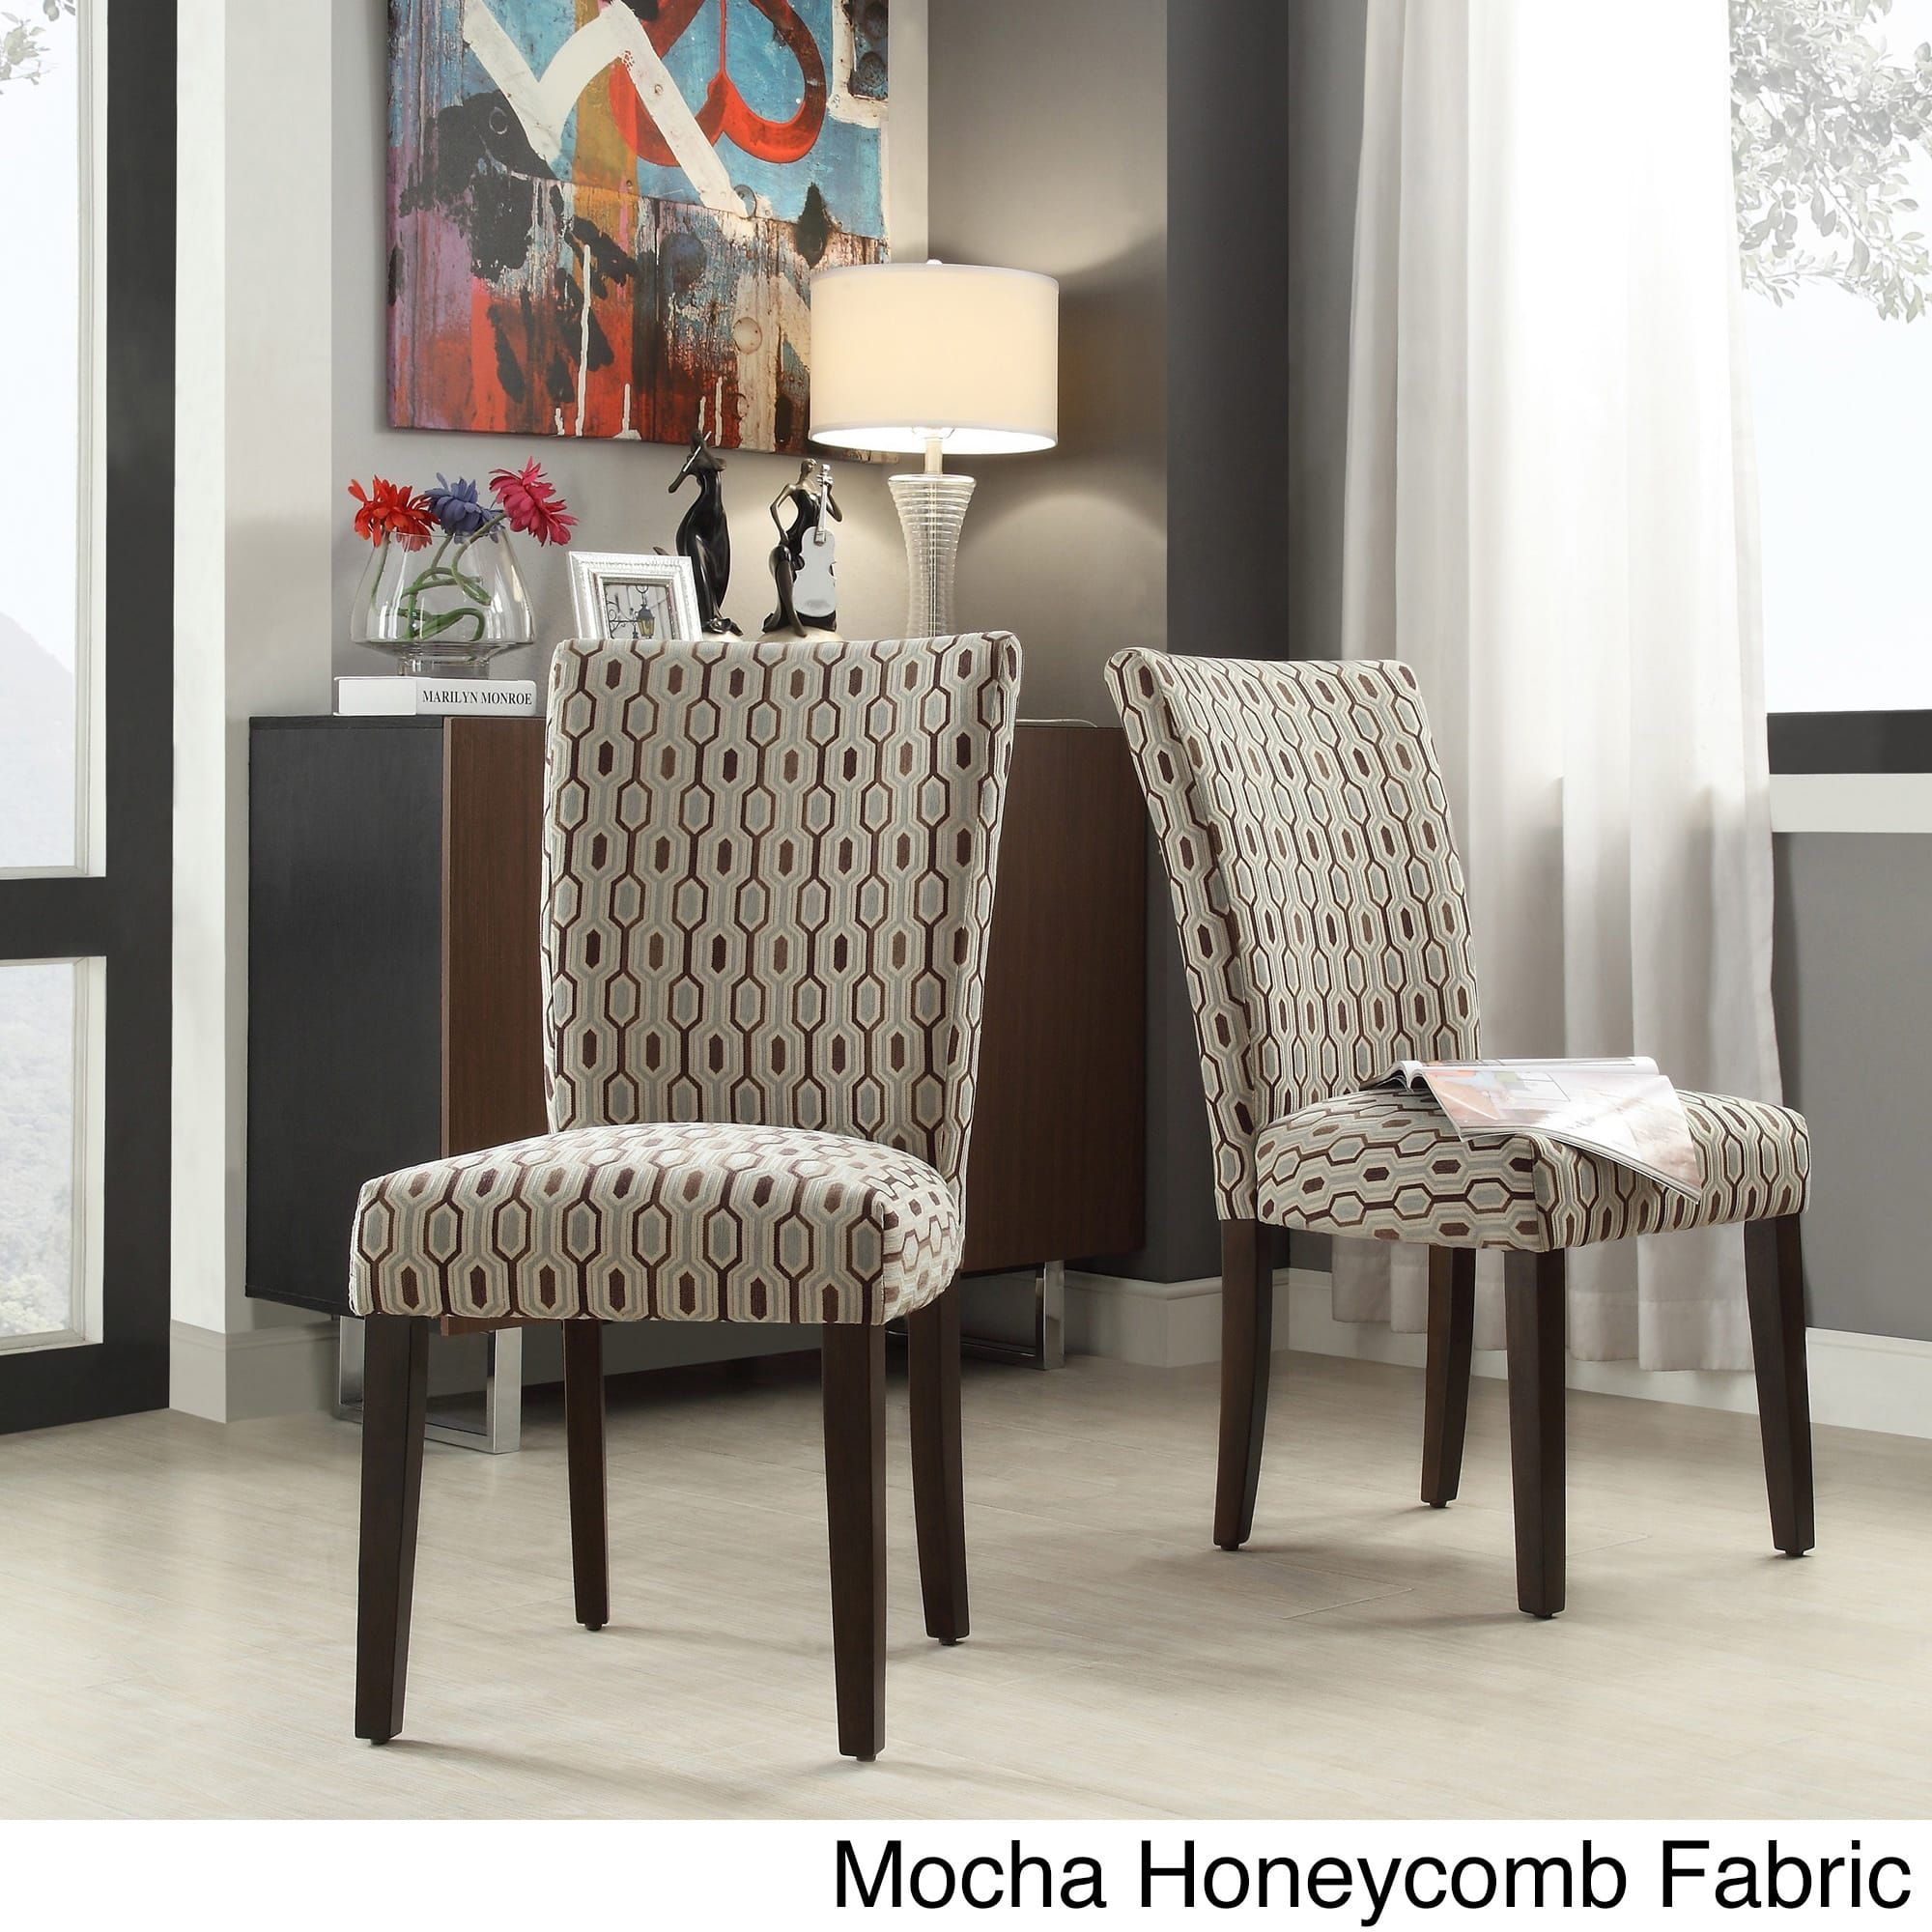 overstock furniture house room fresh and modern guides hero com living decorating cupboard beach ideas decor